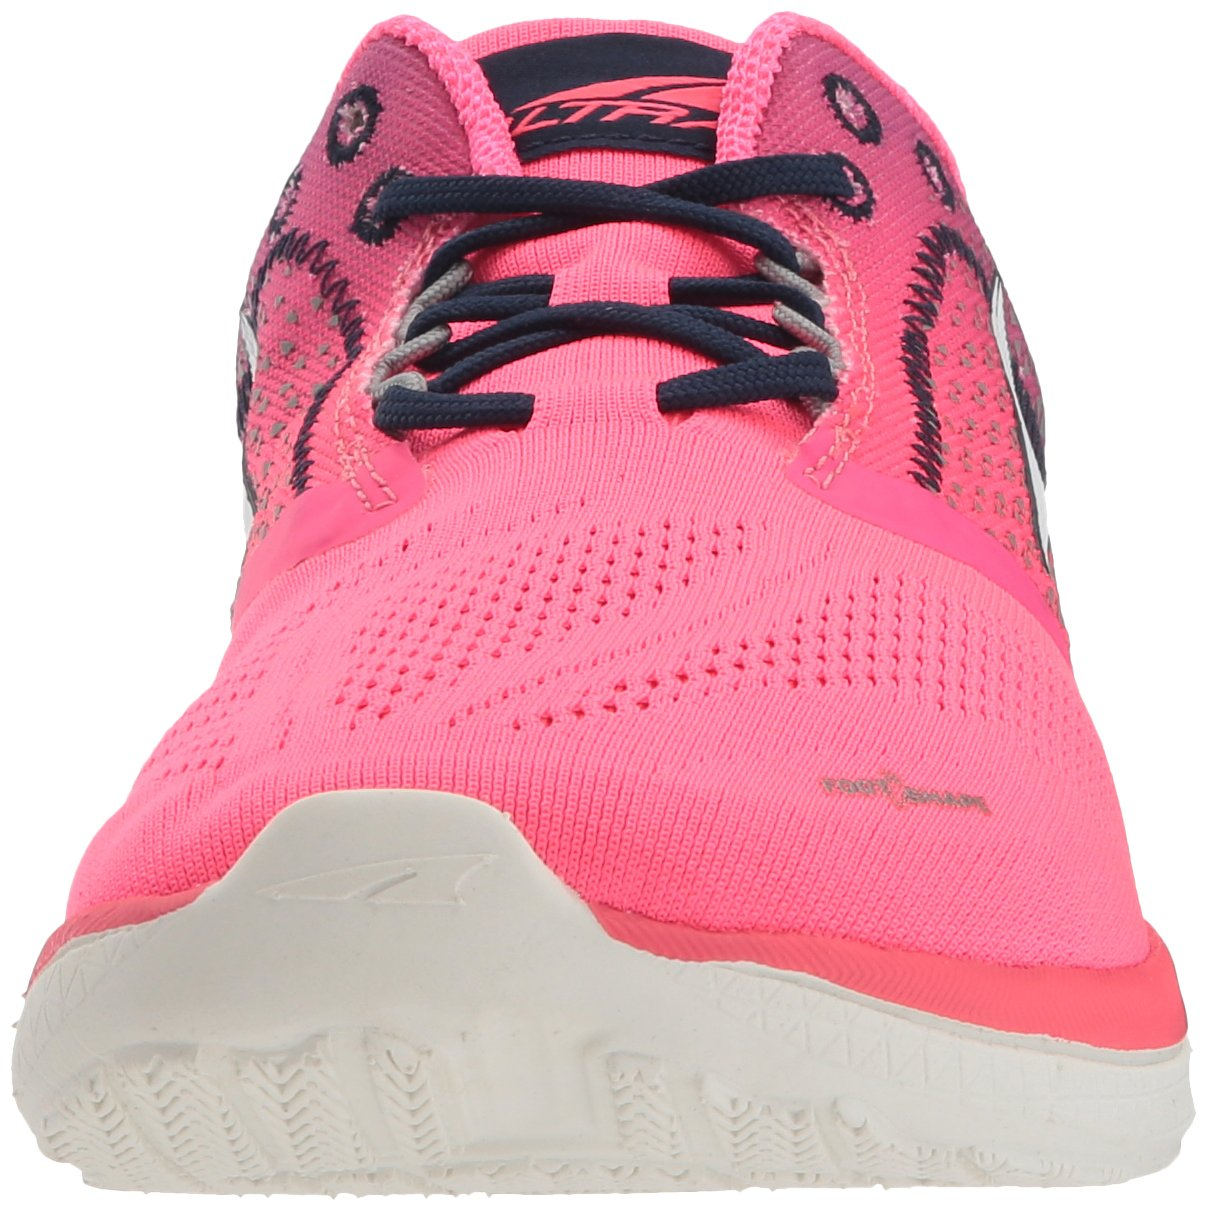 Altra Women's Regular Solstice Sneaker B071JCLR1H 9.5 Regular Women's US|Pink/Blue 220746